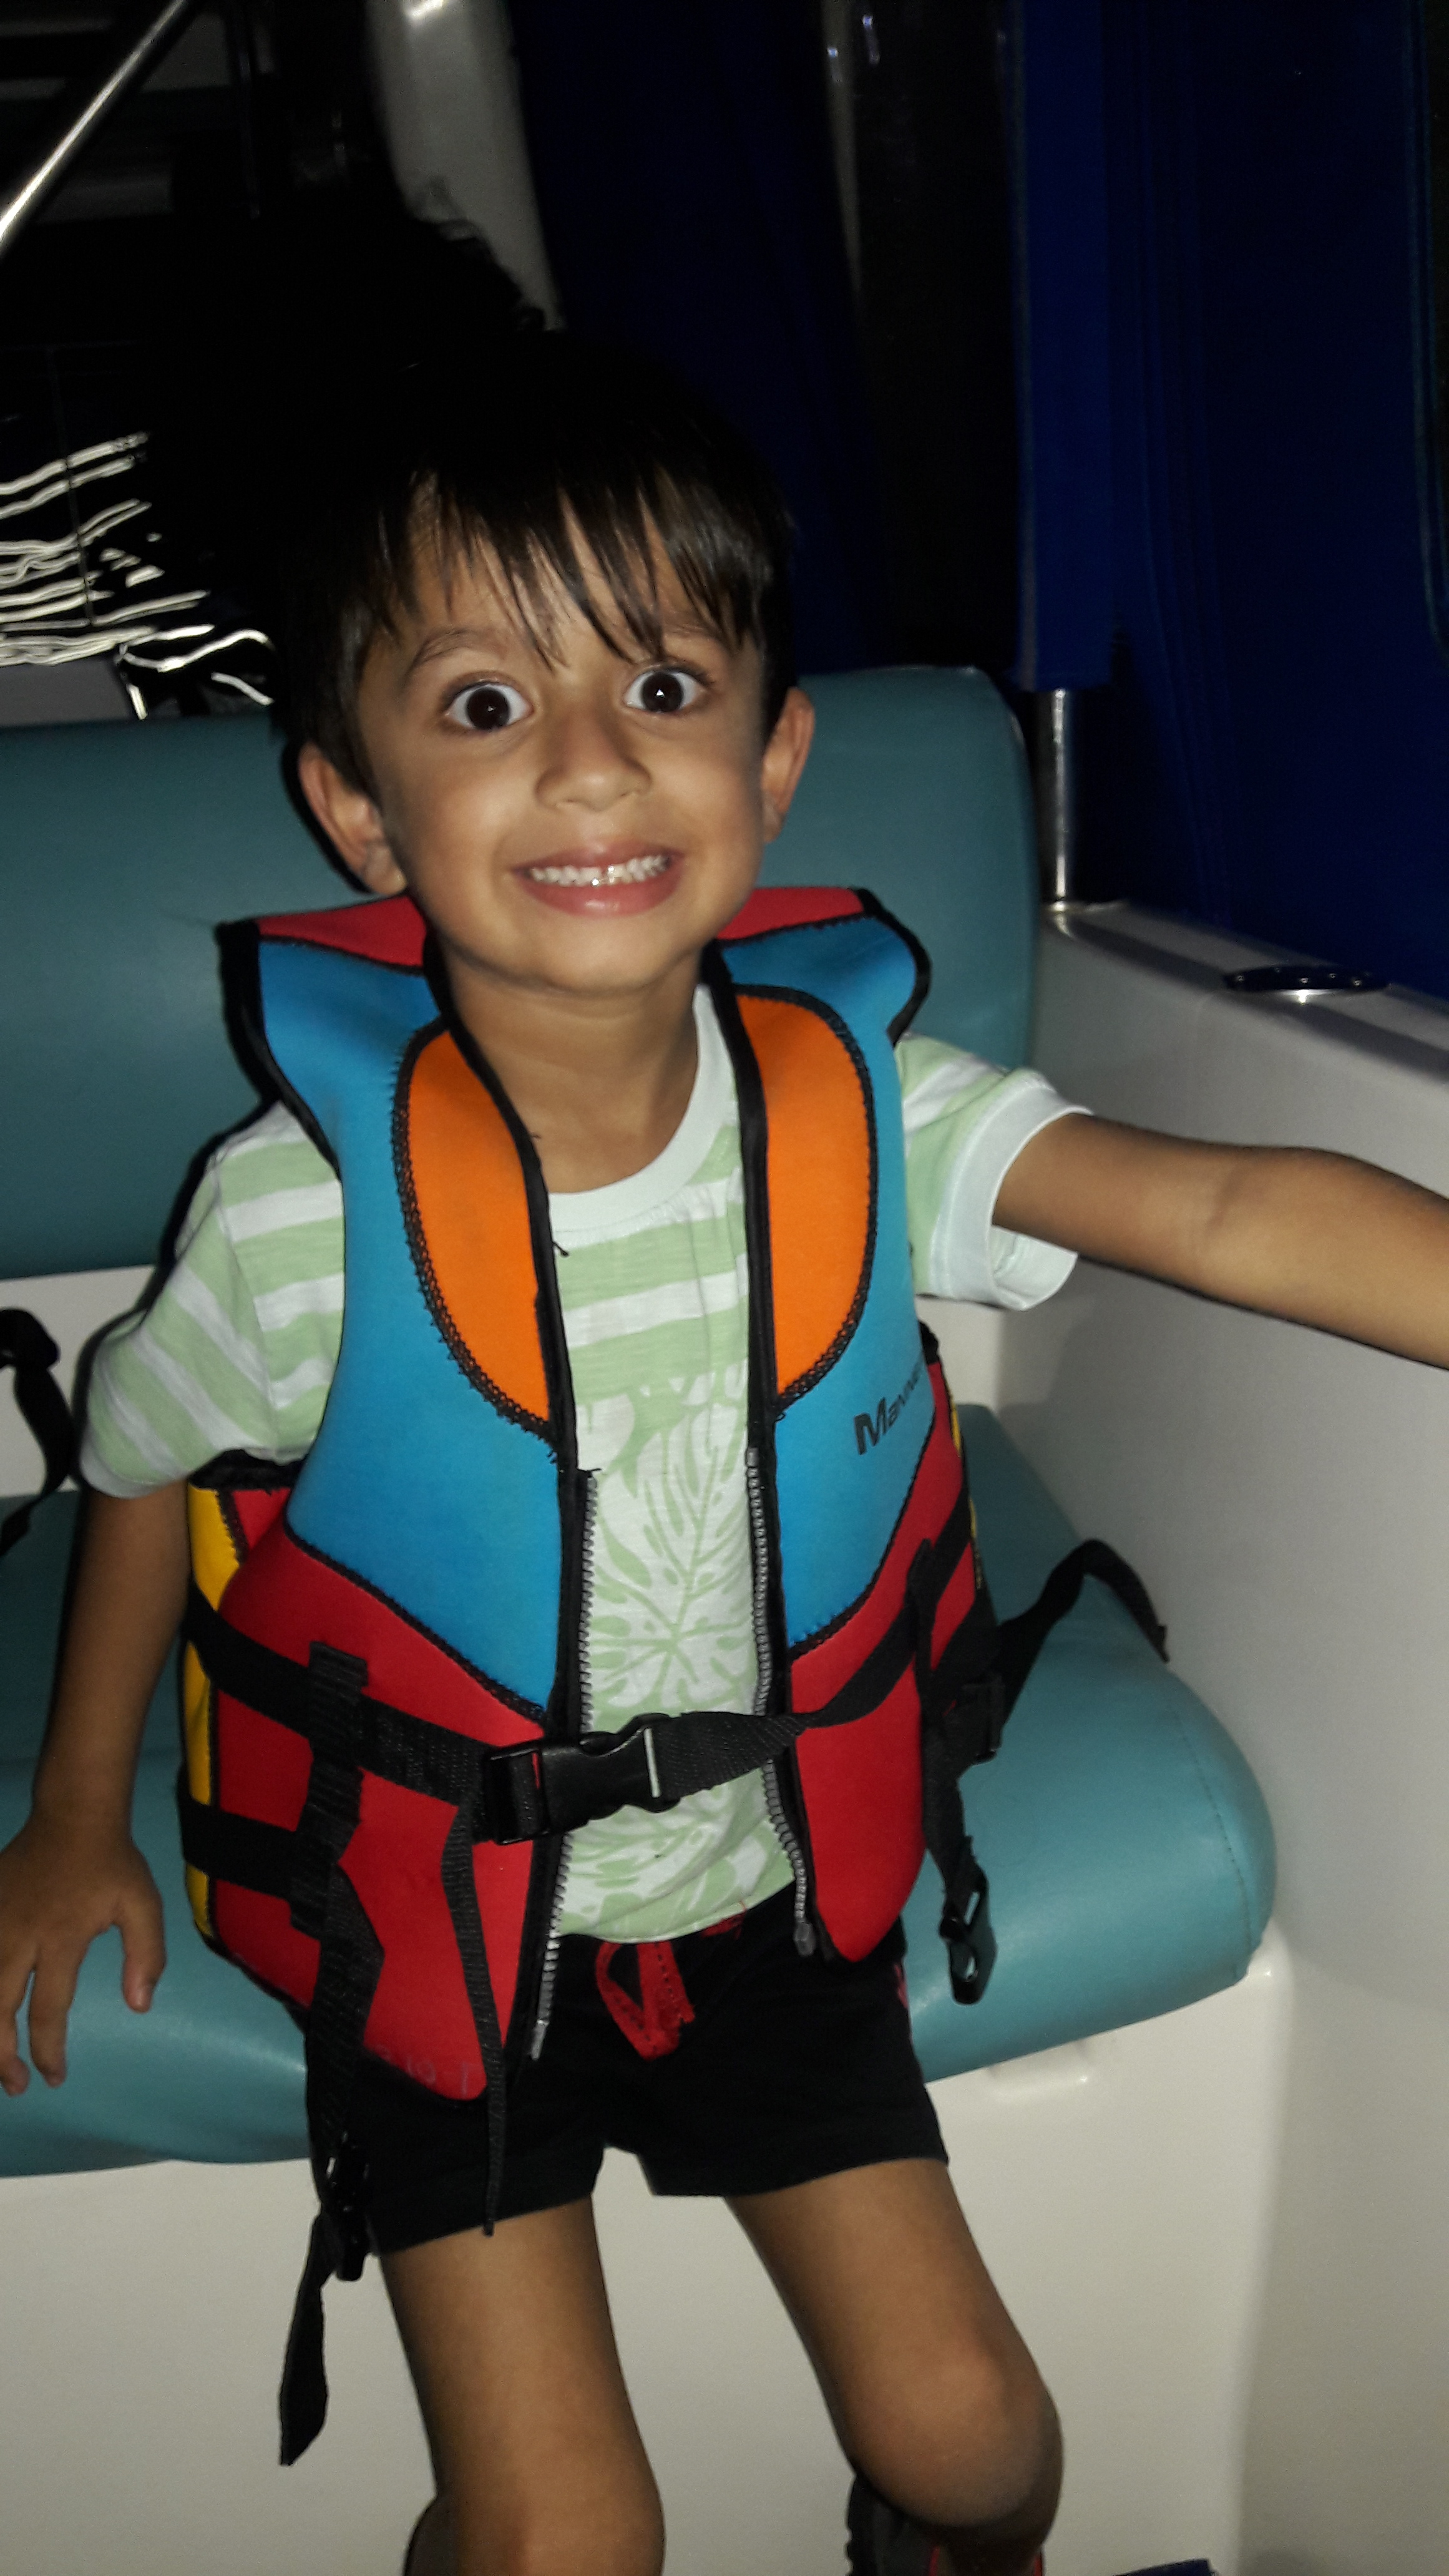 That's the life Jacket....smile says it all!